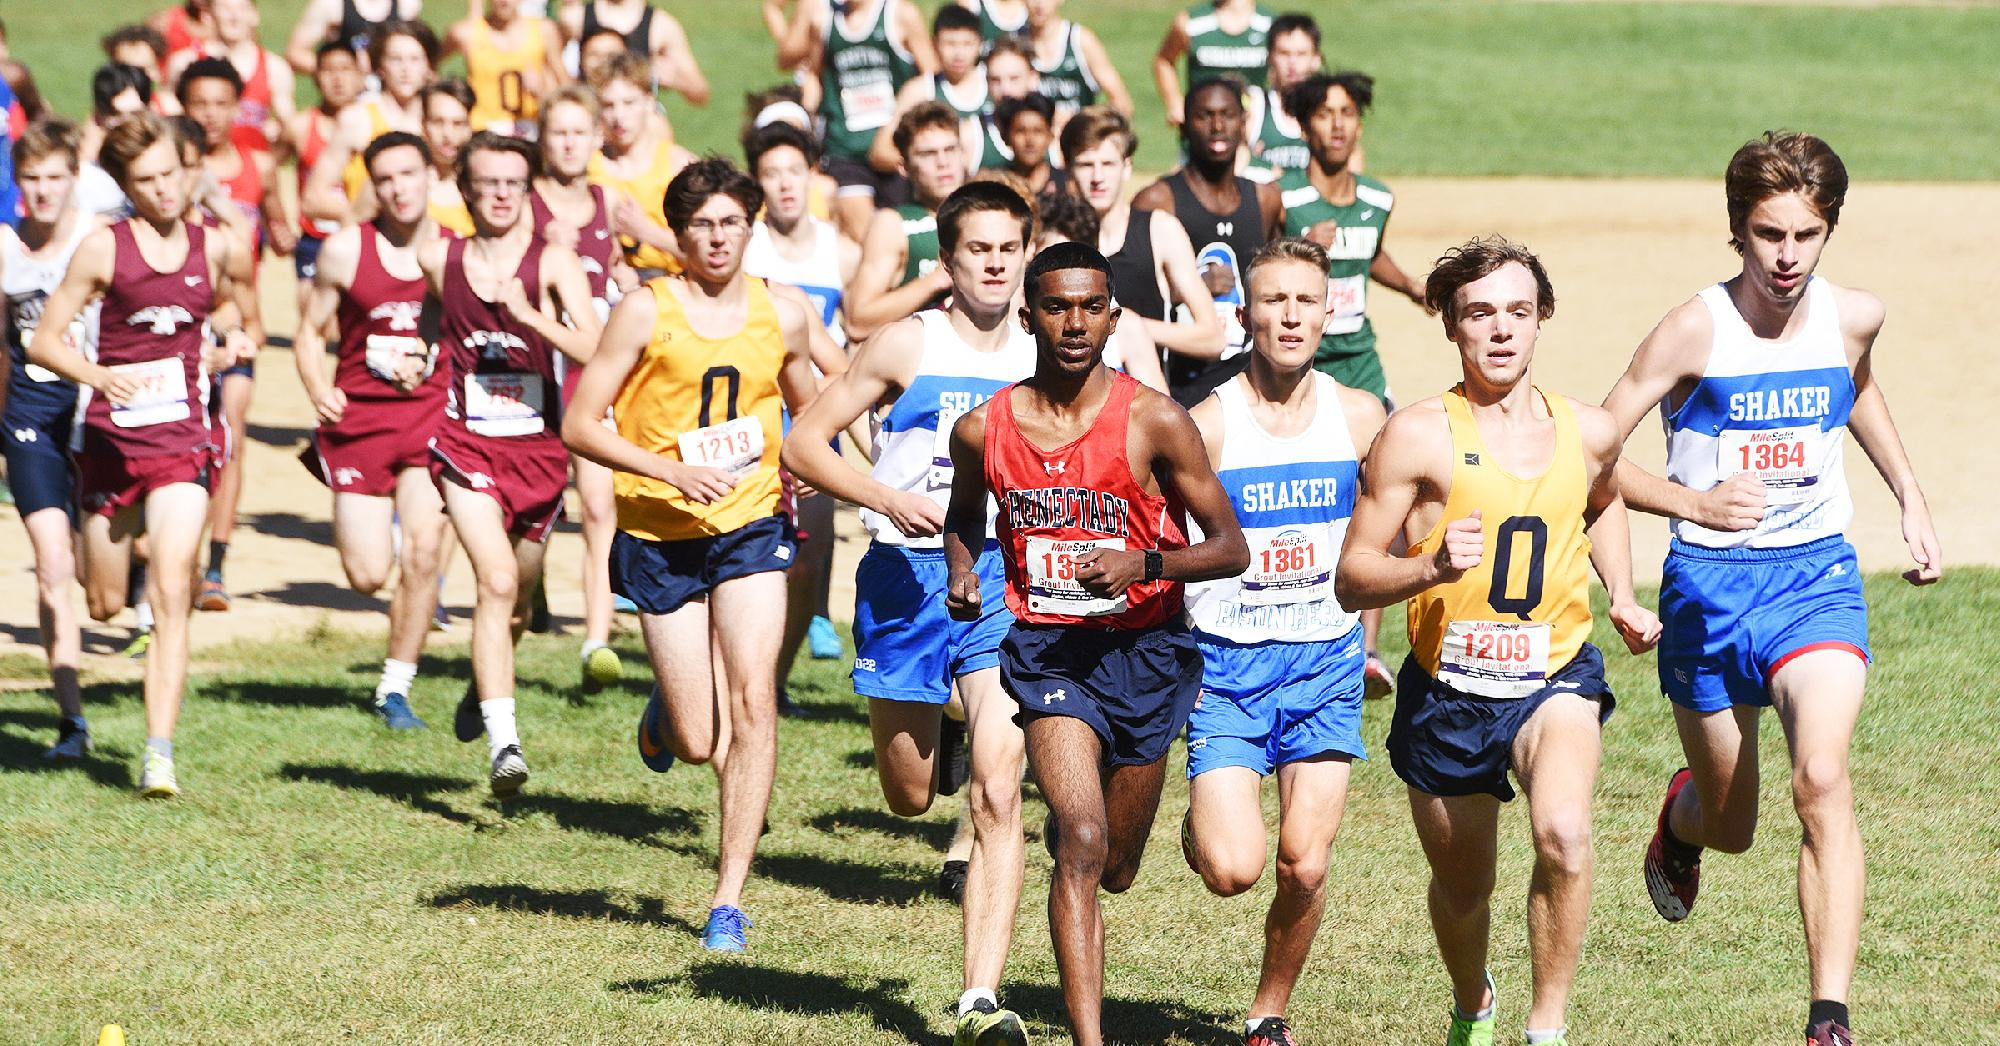 Uncertainty about running invitationals this year in ...